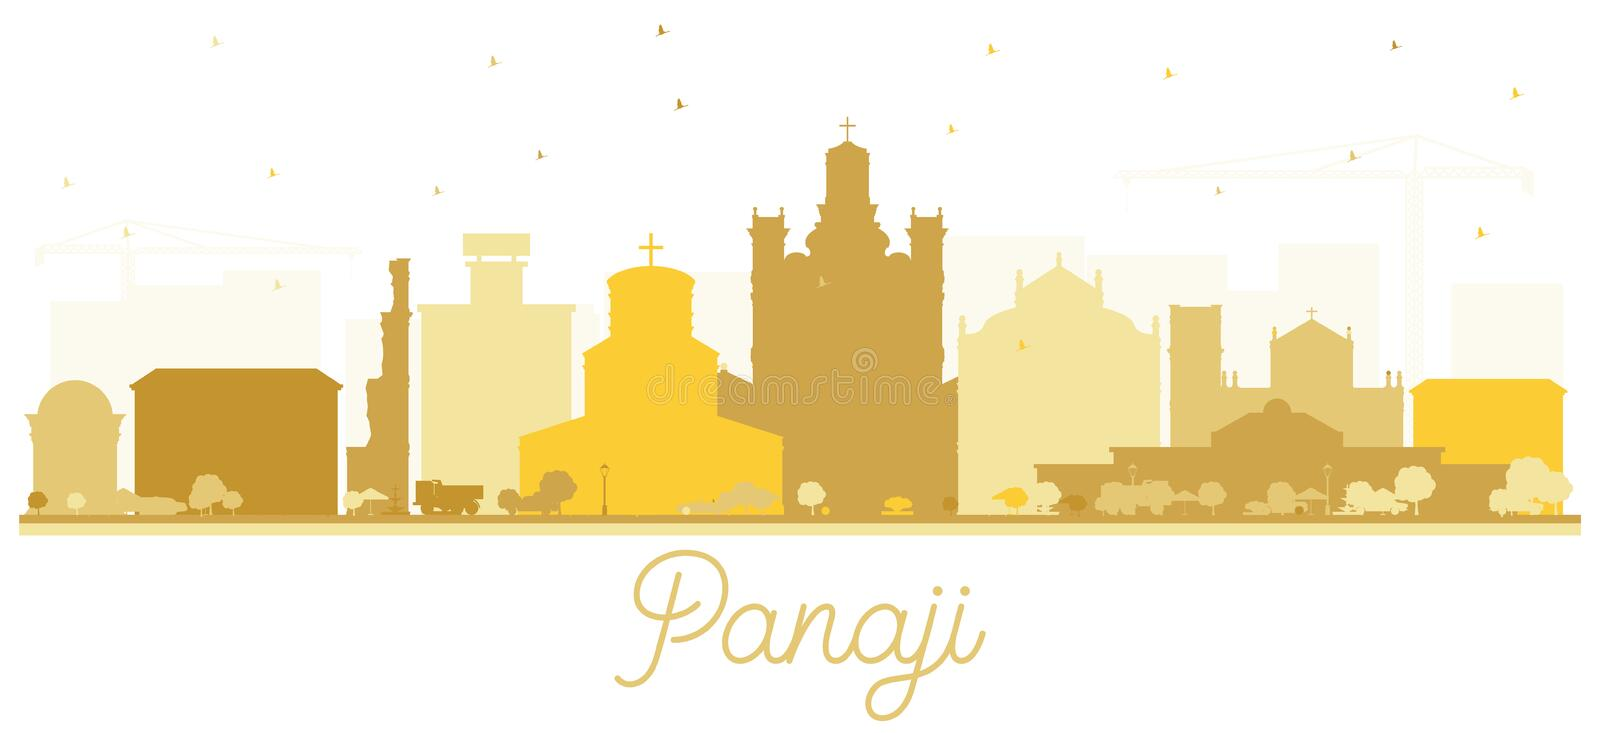 Panaji India City Skyline Silhouette with Golden Buildings Isolated on White vector illustration